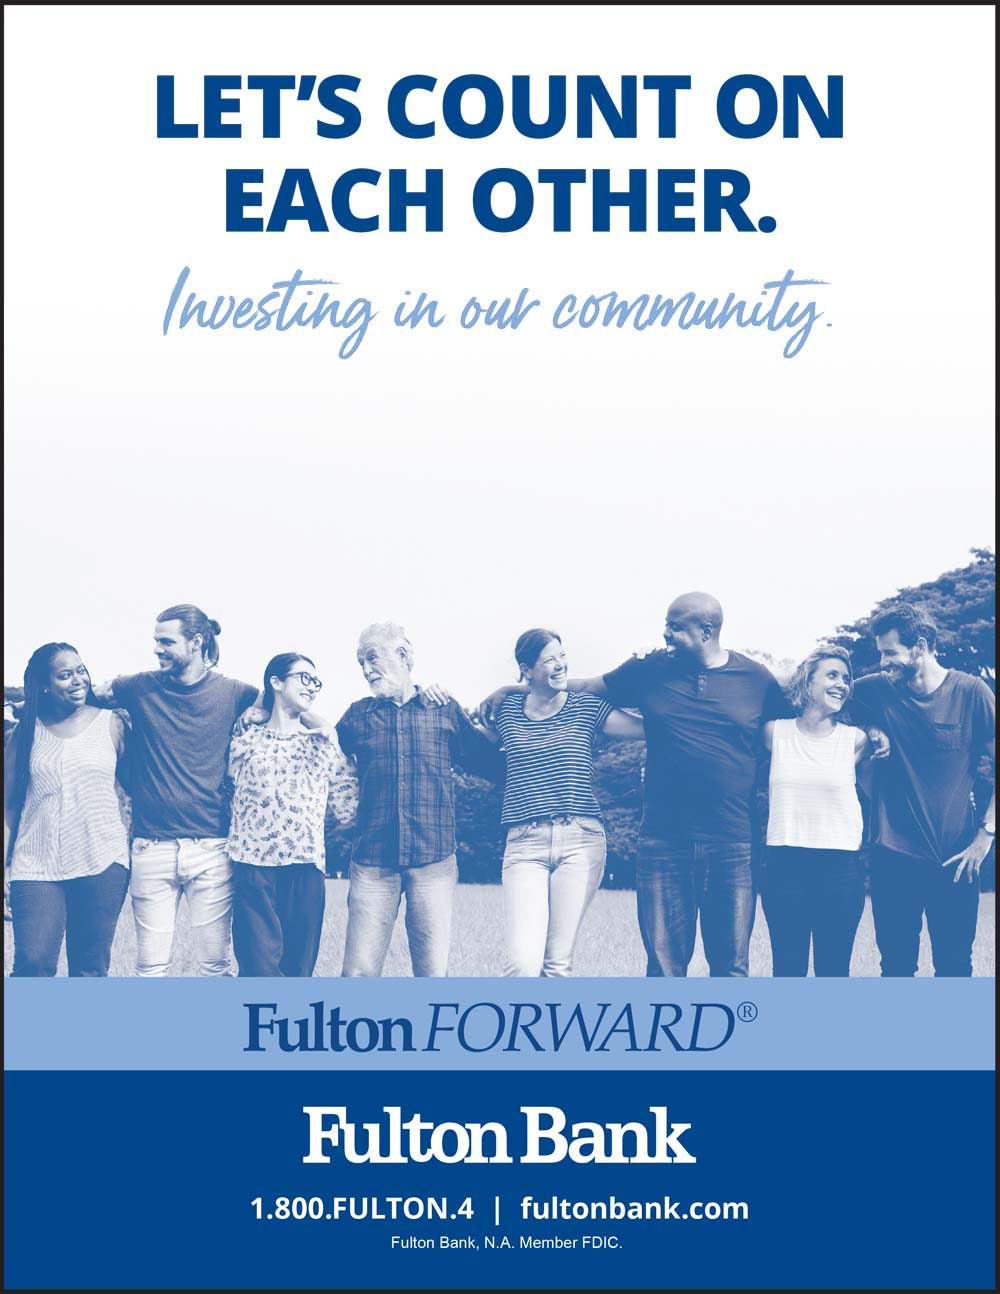 Fulton Bank - Let's count on each other